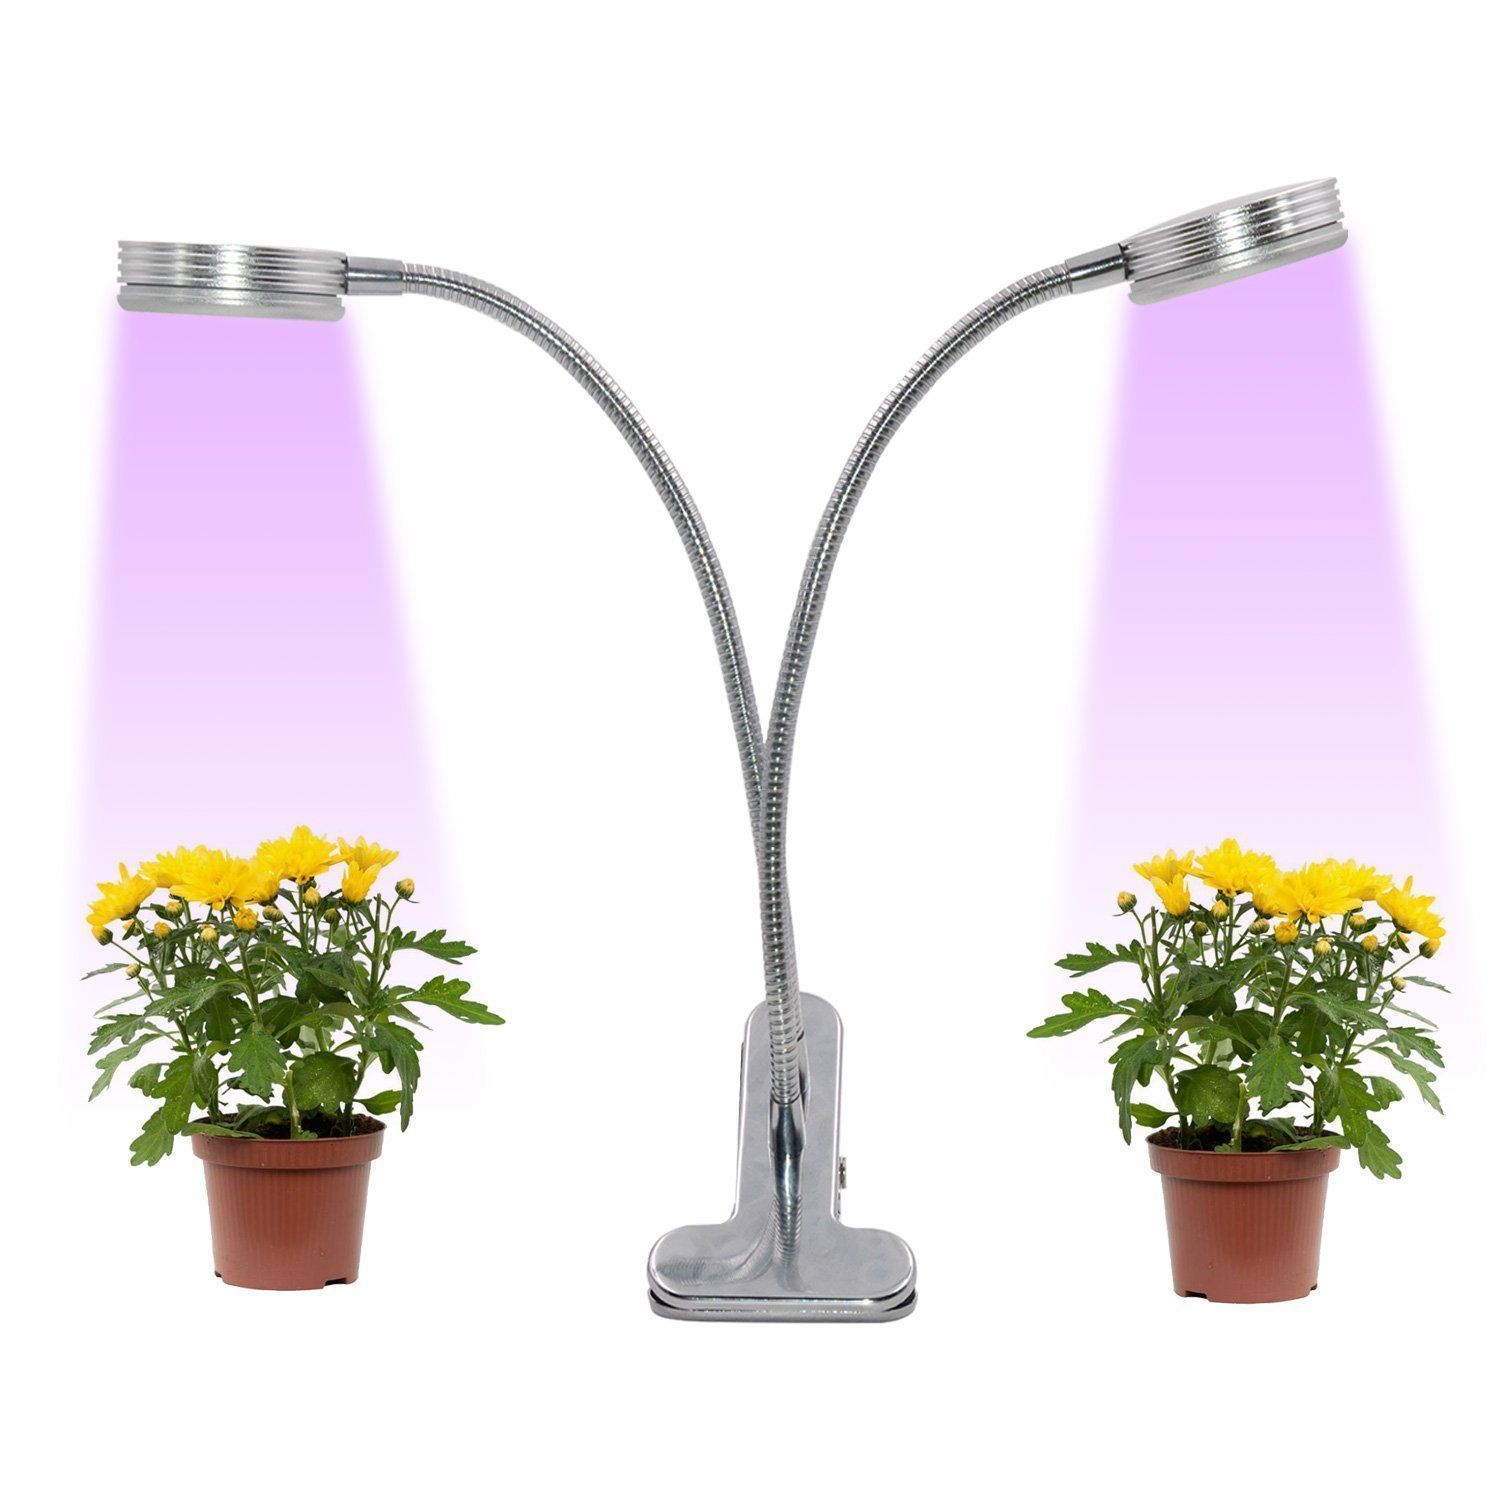 2018 UPGRADED] Dual Head Plant Grow Light - 12W 2 Gears LED Grow ...